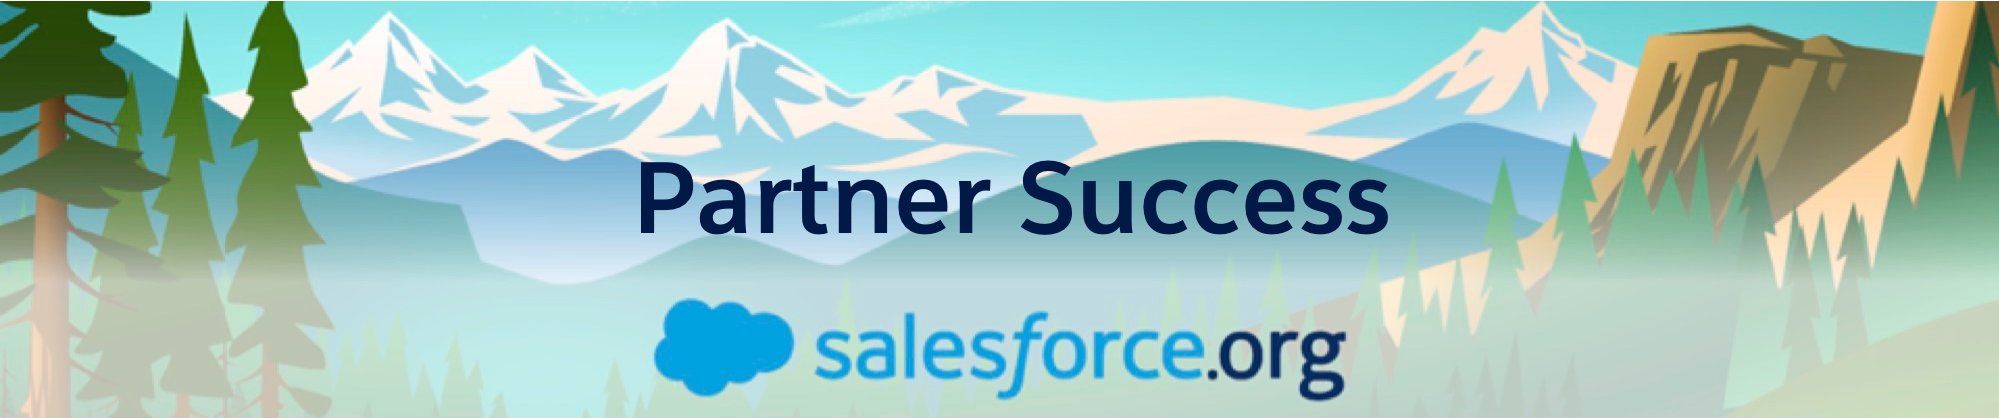 /s/PartnerSuccess_Banner.png?v=1